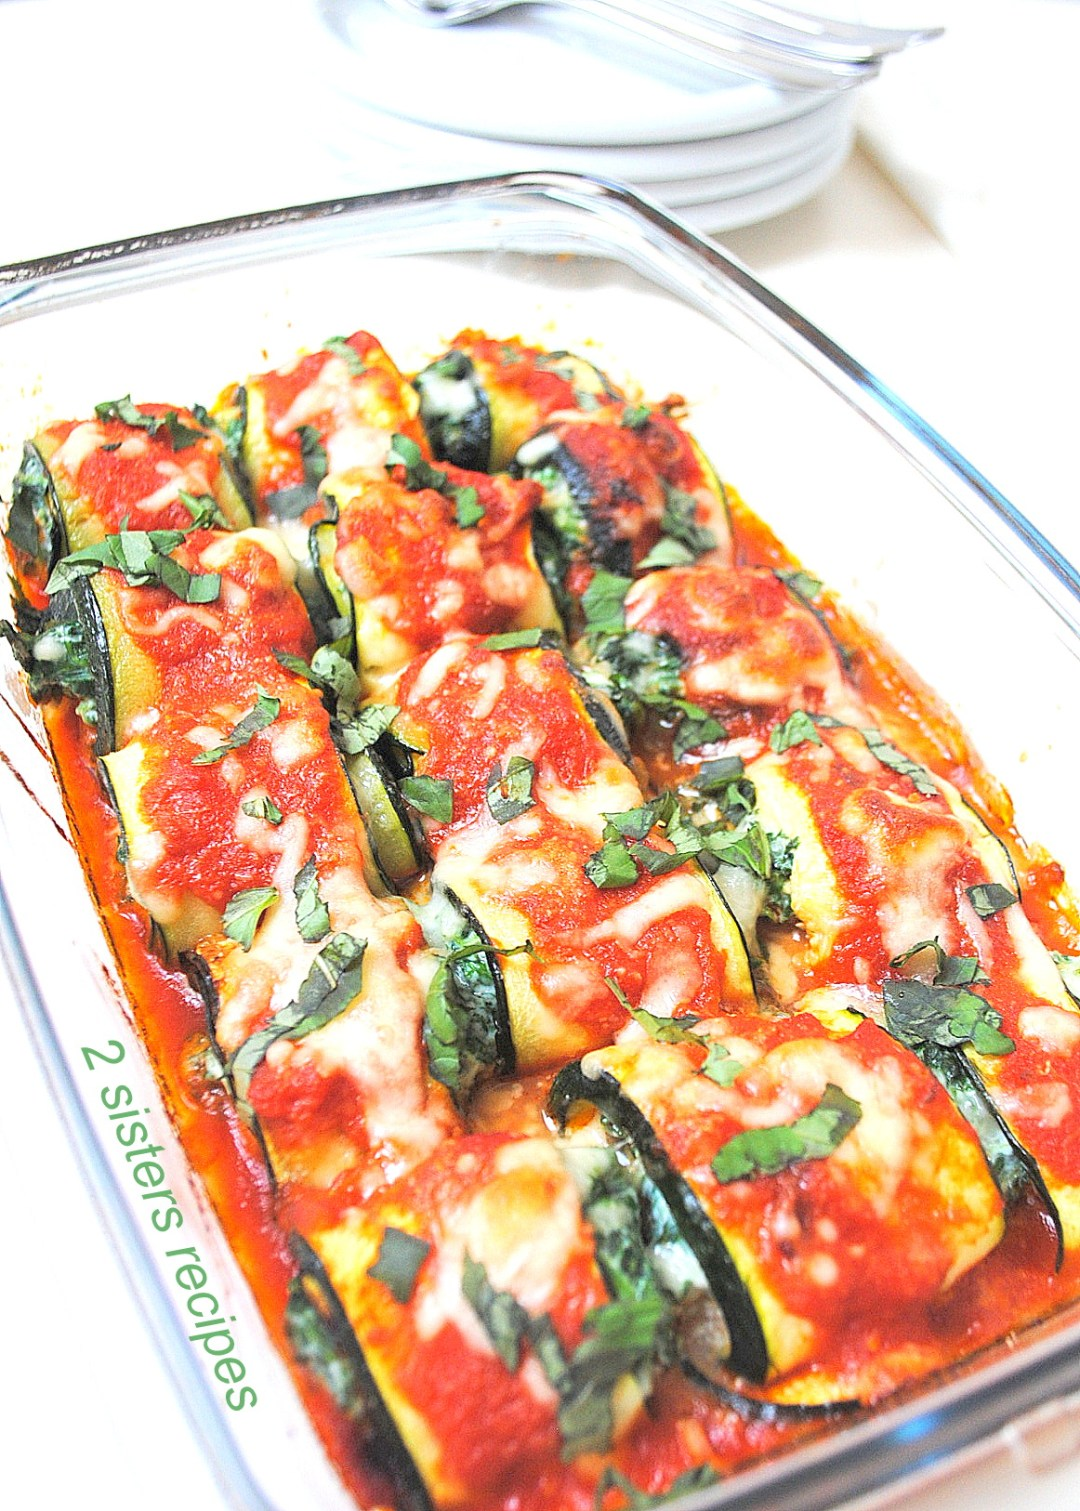 Zucchini Rollatini with Spinach and Cheese by 2sistersrecipes.com